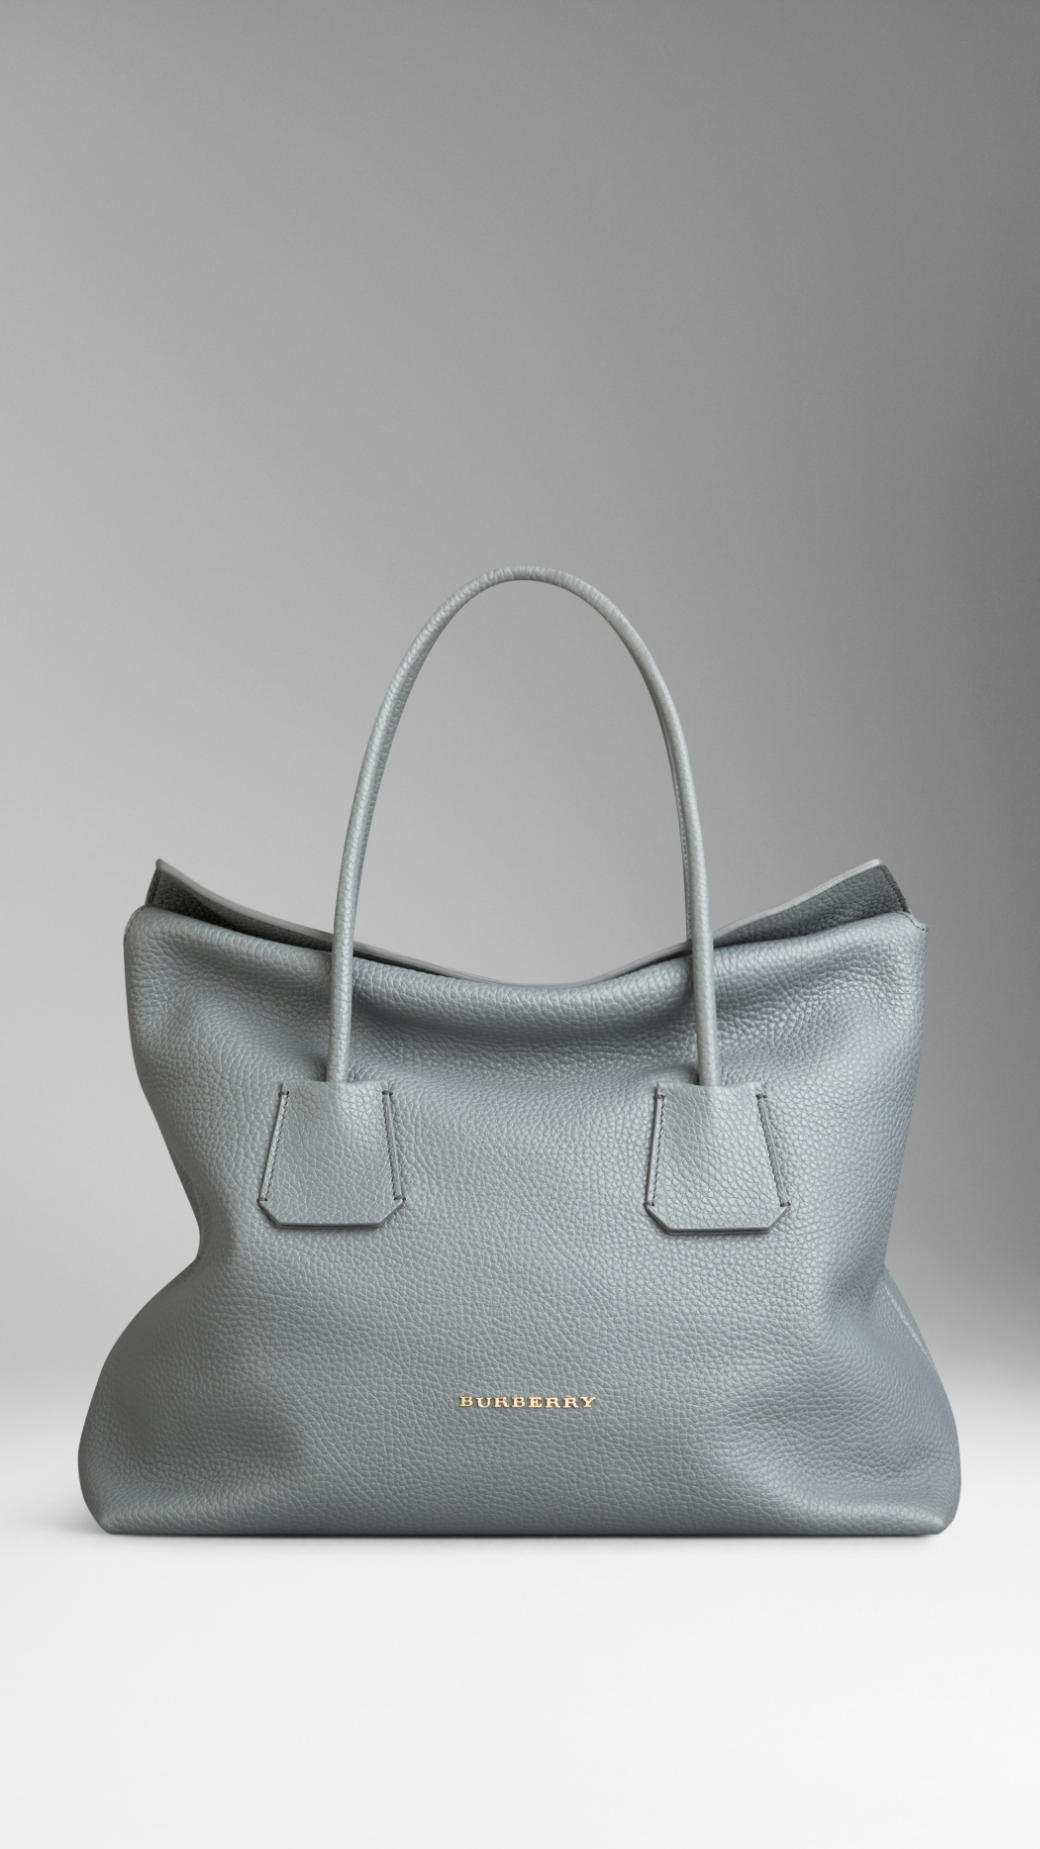 burberry bags outlet sales b5w1  Gallery